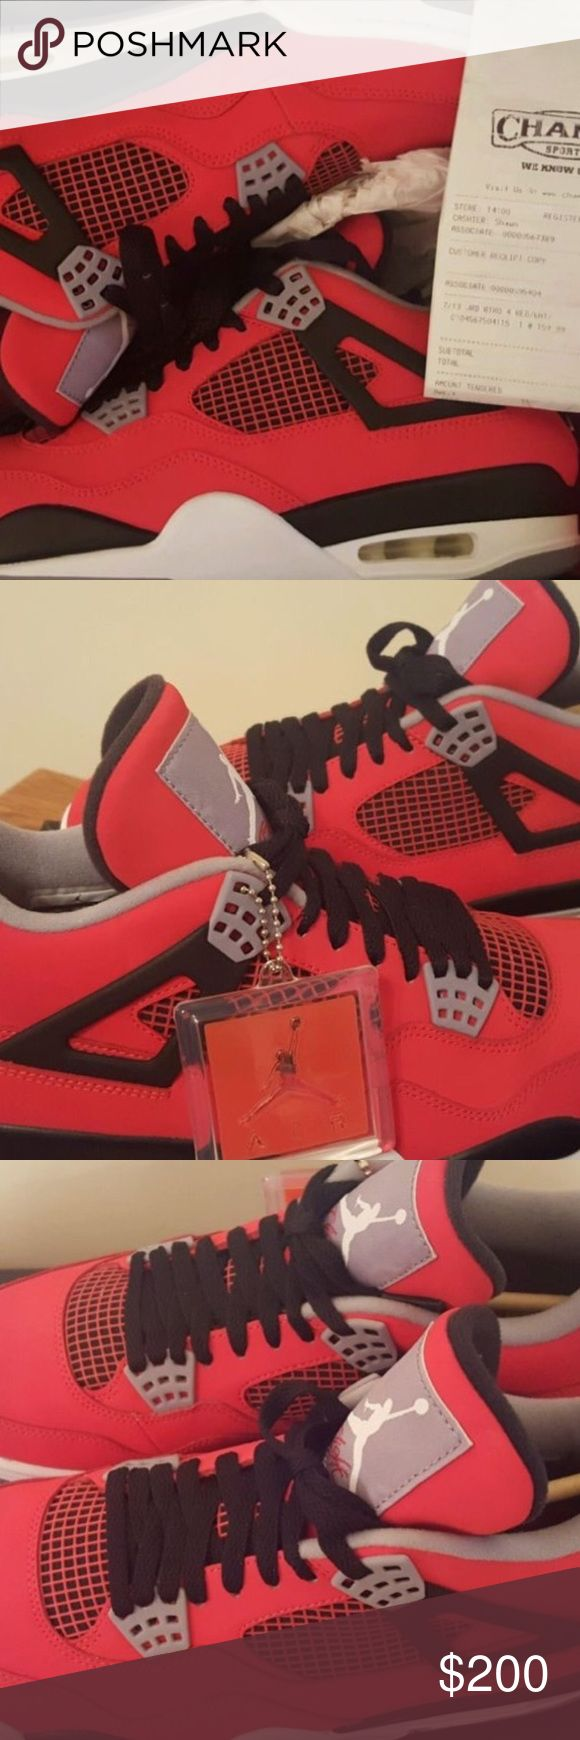 Jordan Retro 4 Red If interested text me on here for details, & discuss further through email or text message! Jordan Shoes Sneakers